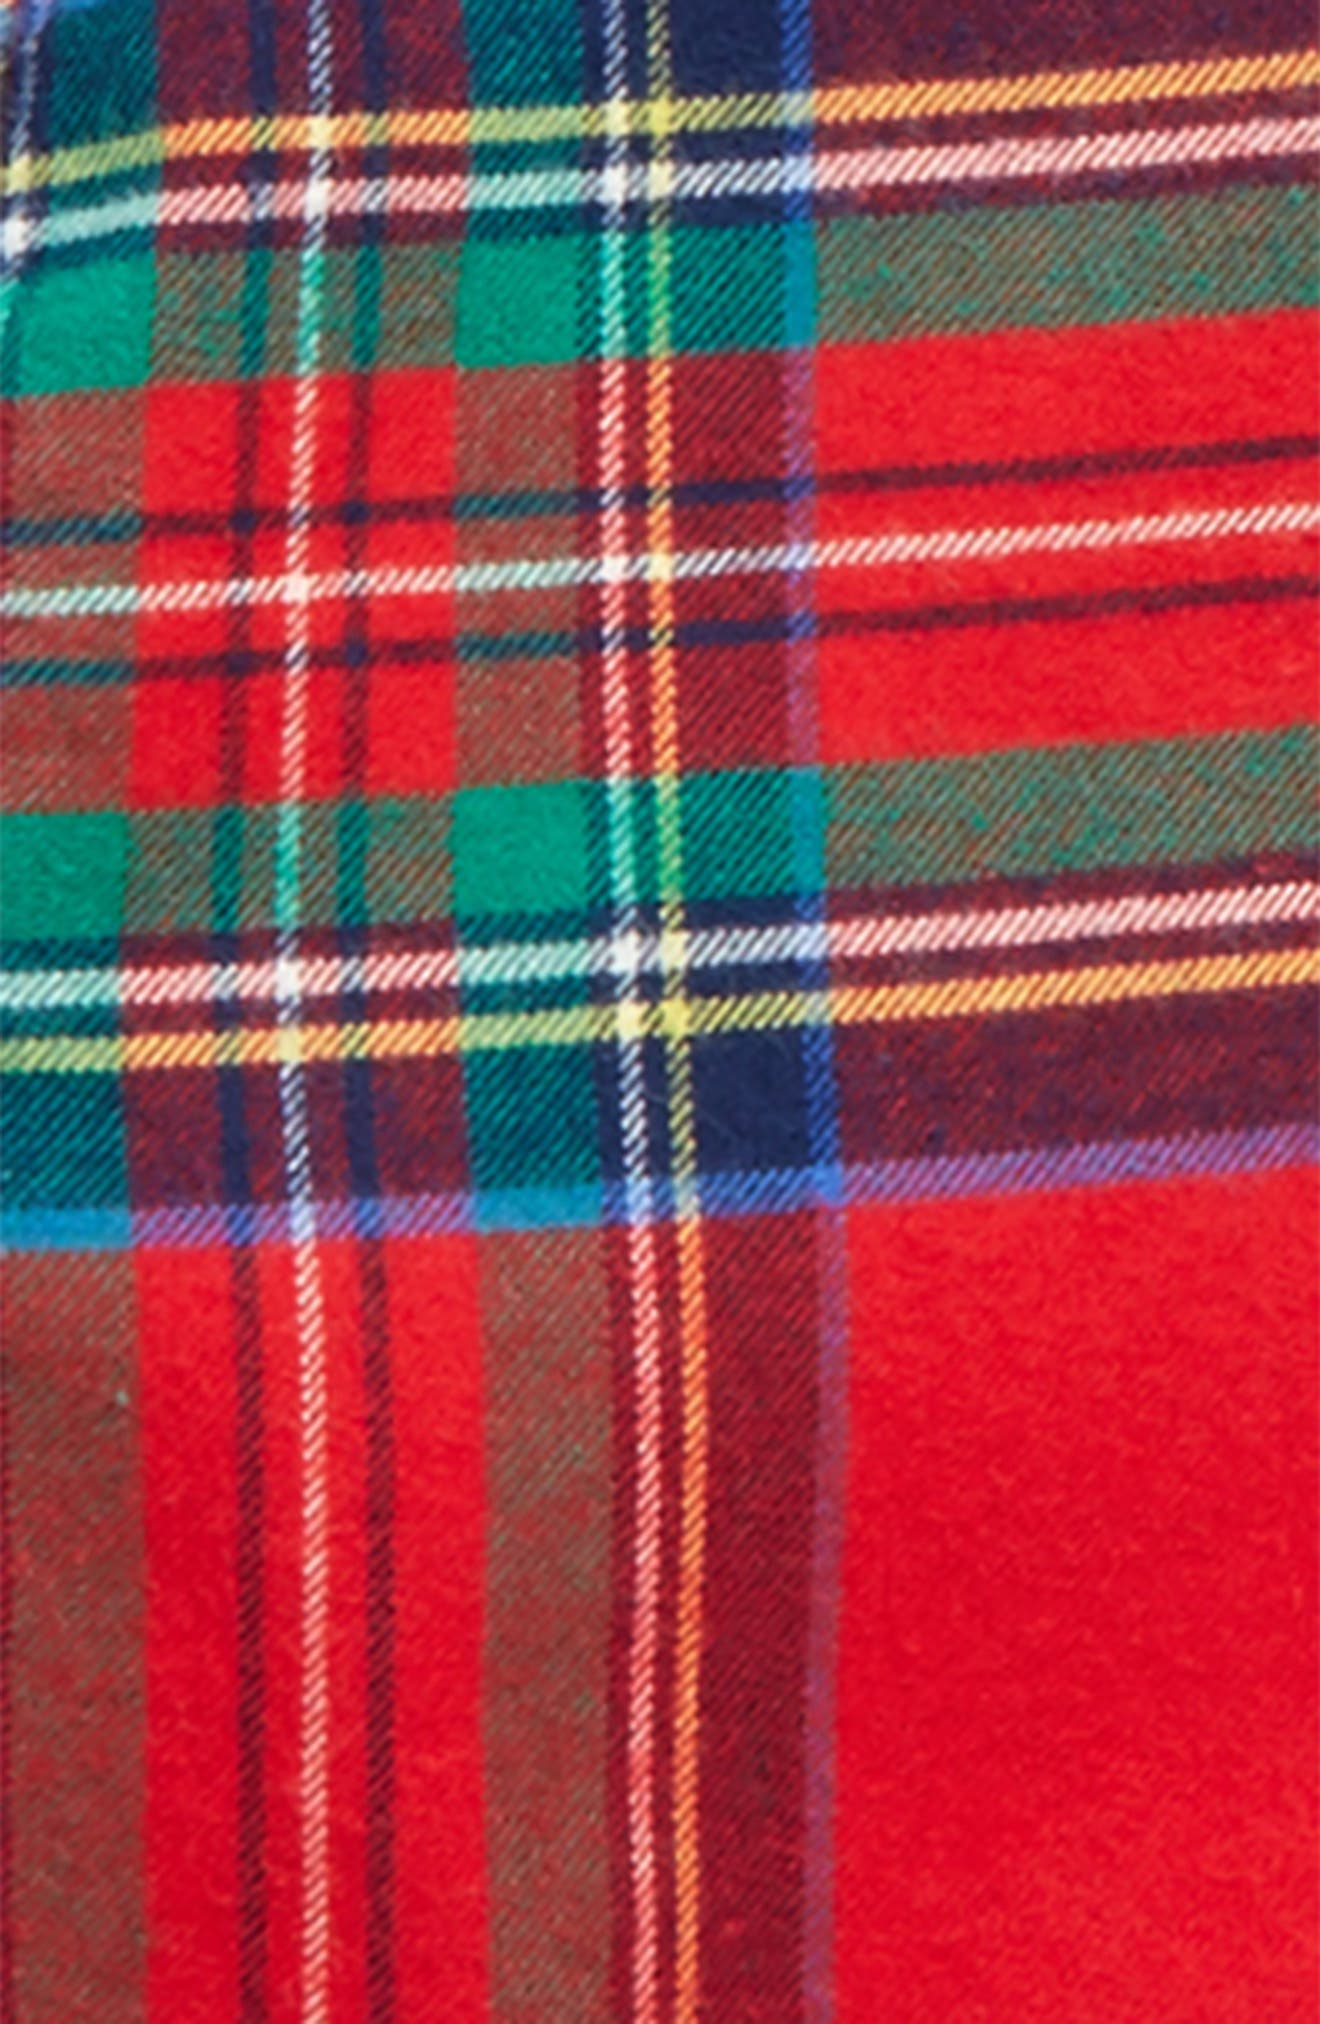 Jolly Plaid Whale Flannel Shirt,                             Alternate thumbnail 2, color,                             634